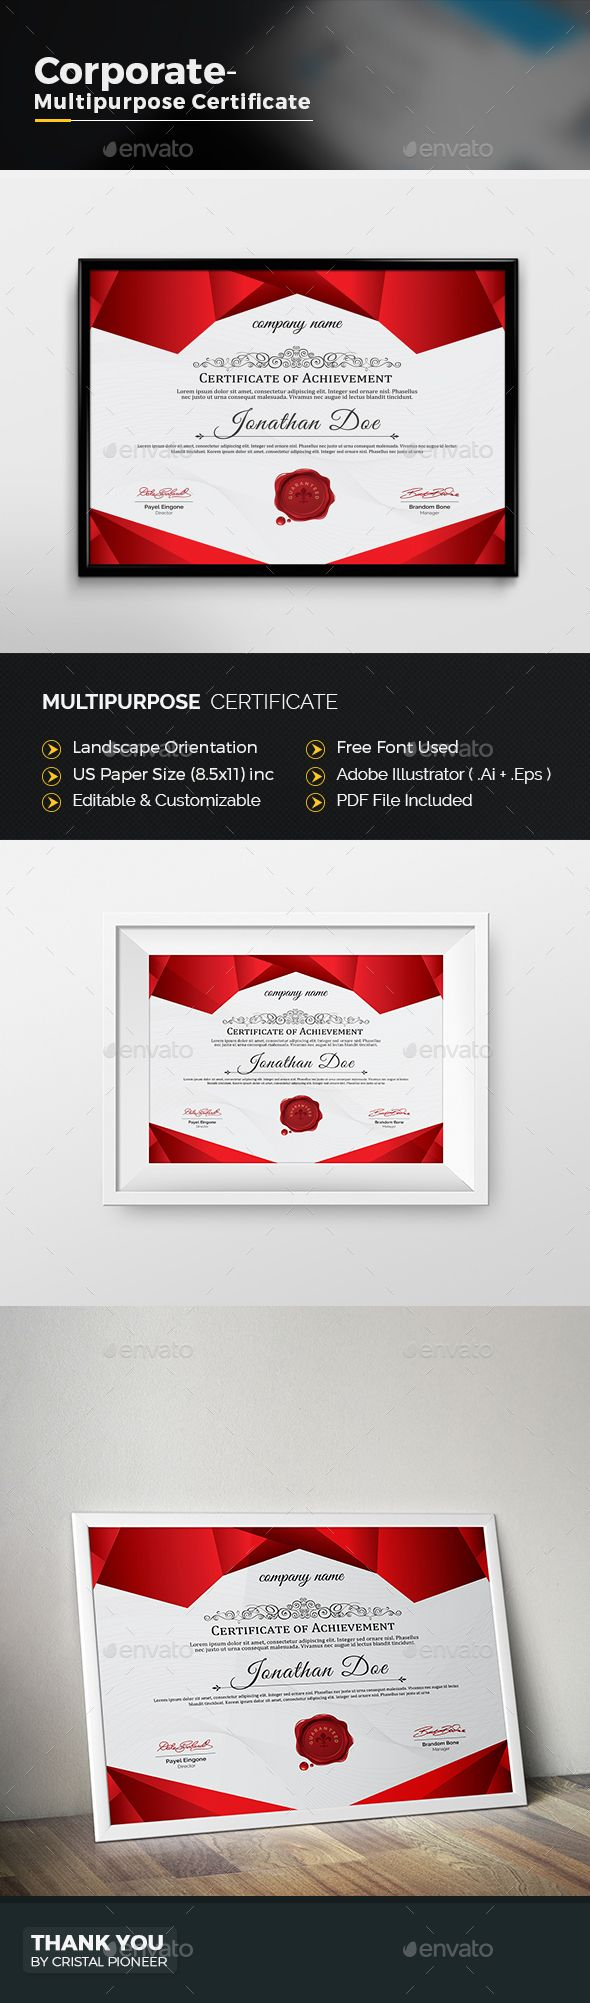 34 best certificate templates psd images on pinterest multipurpose certificate yelopaper Choice Image